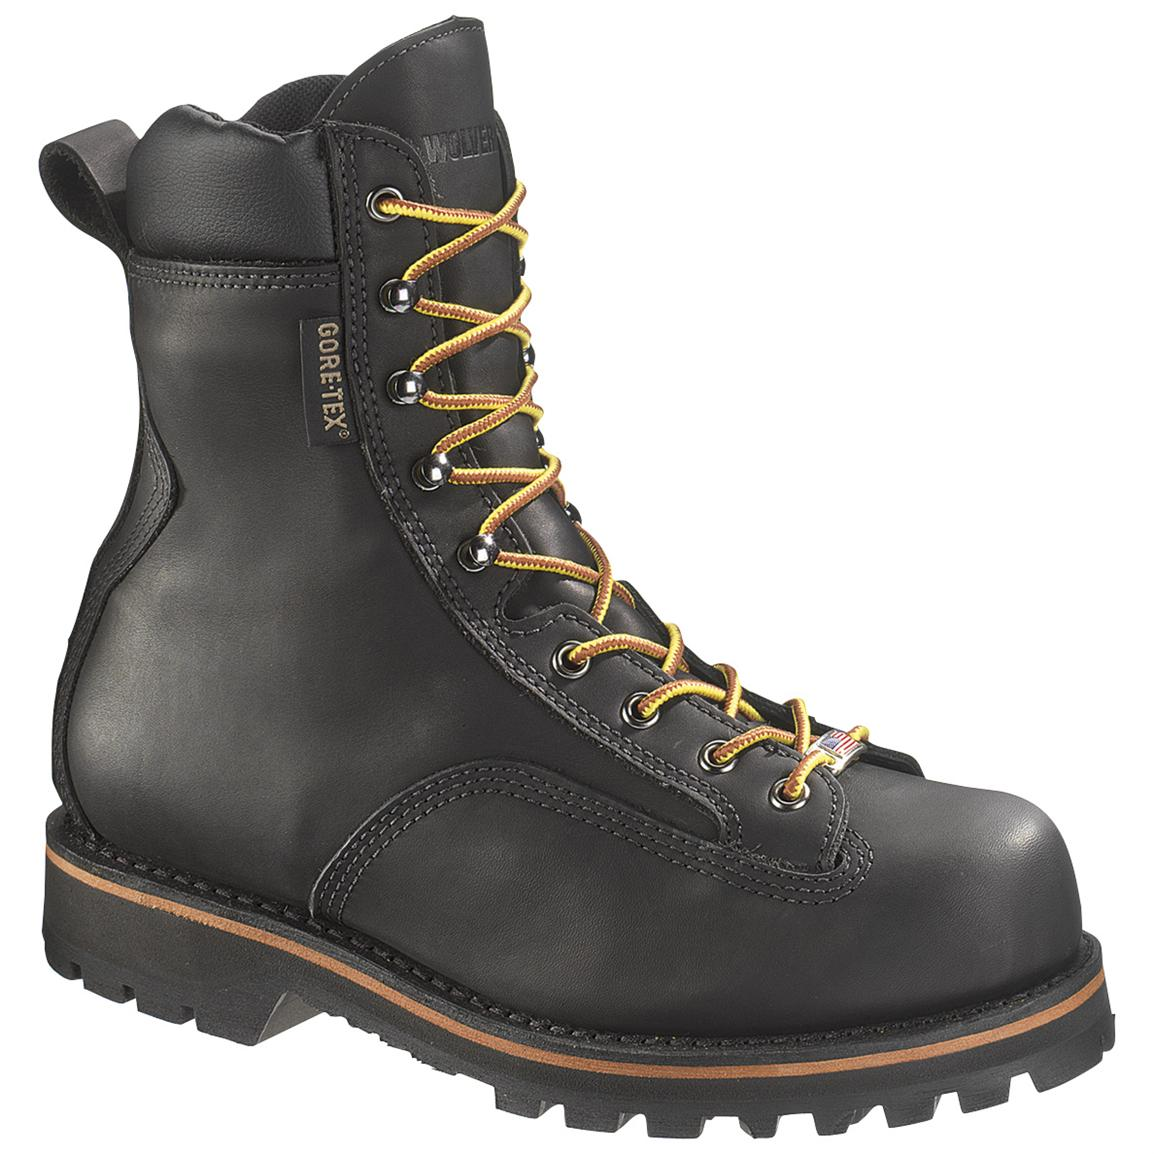 Men's Wolverine® 8 inch Northman GORE-TEX® Steel Toe EH Boots, Black